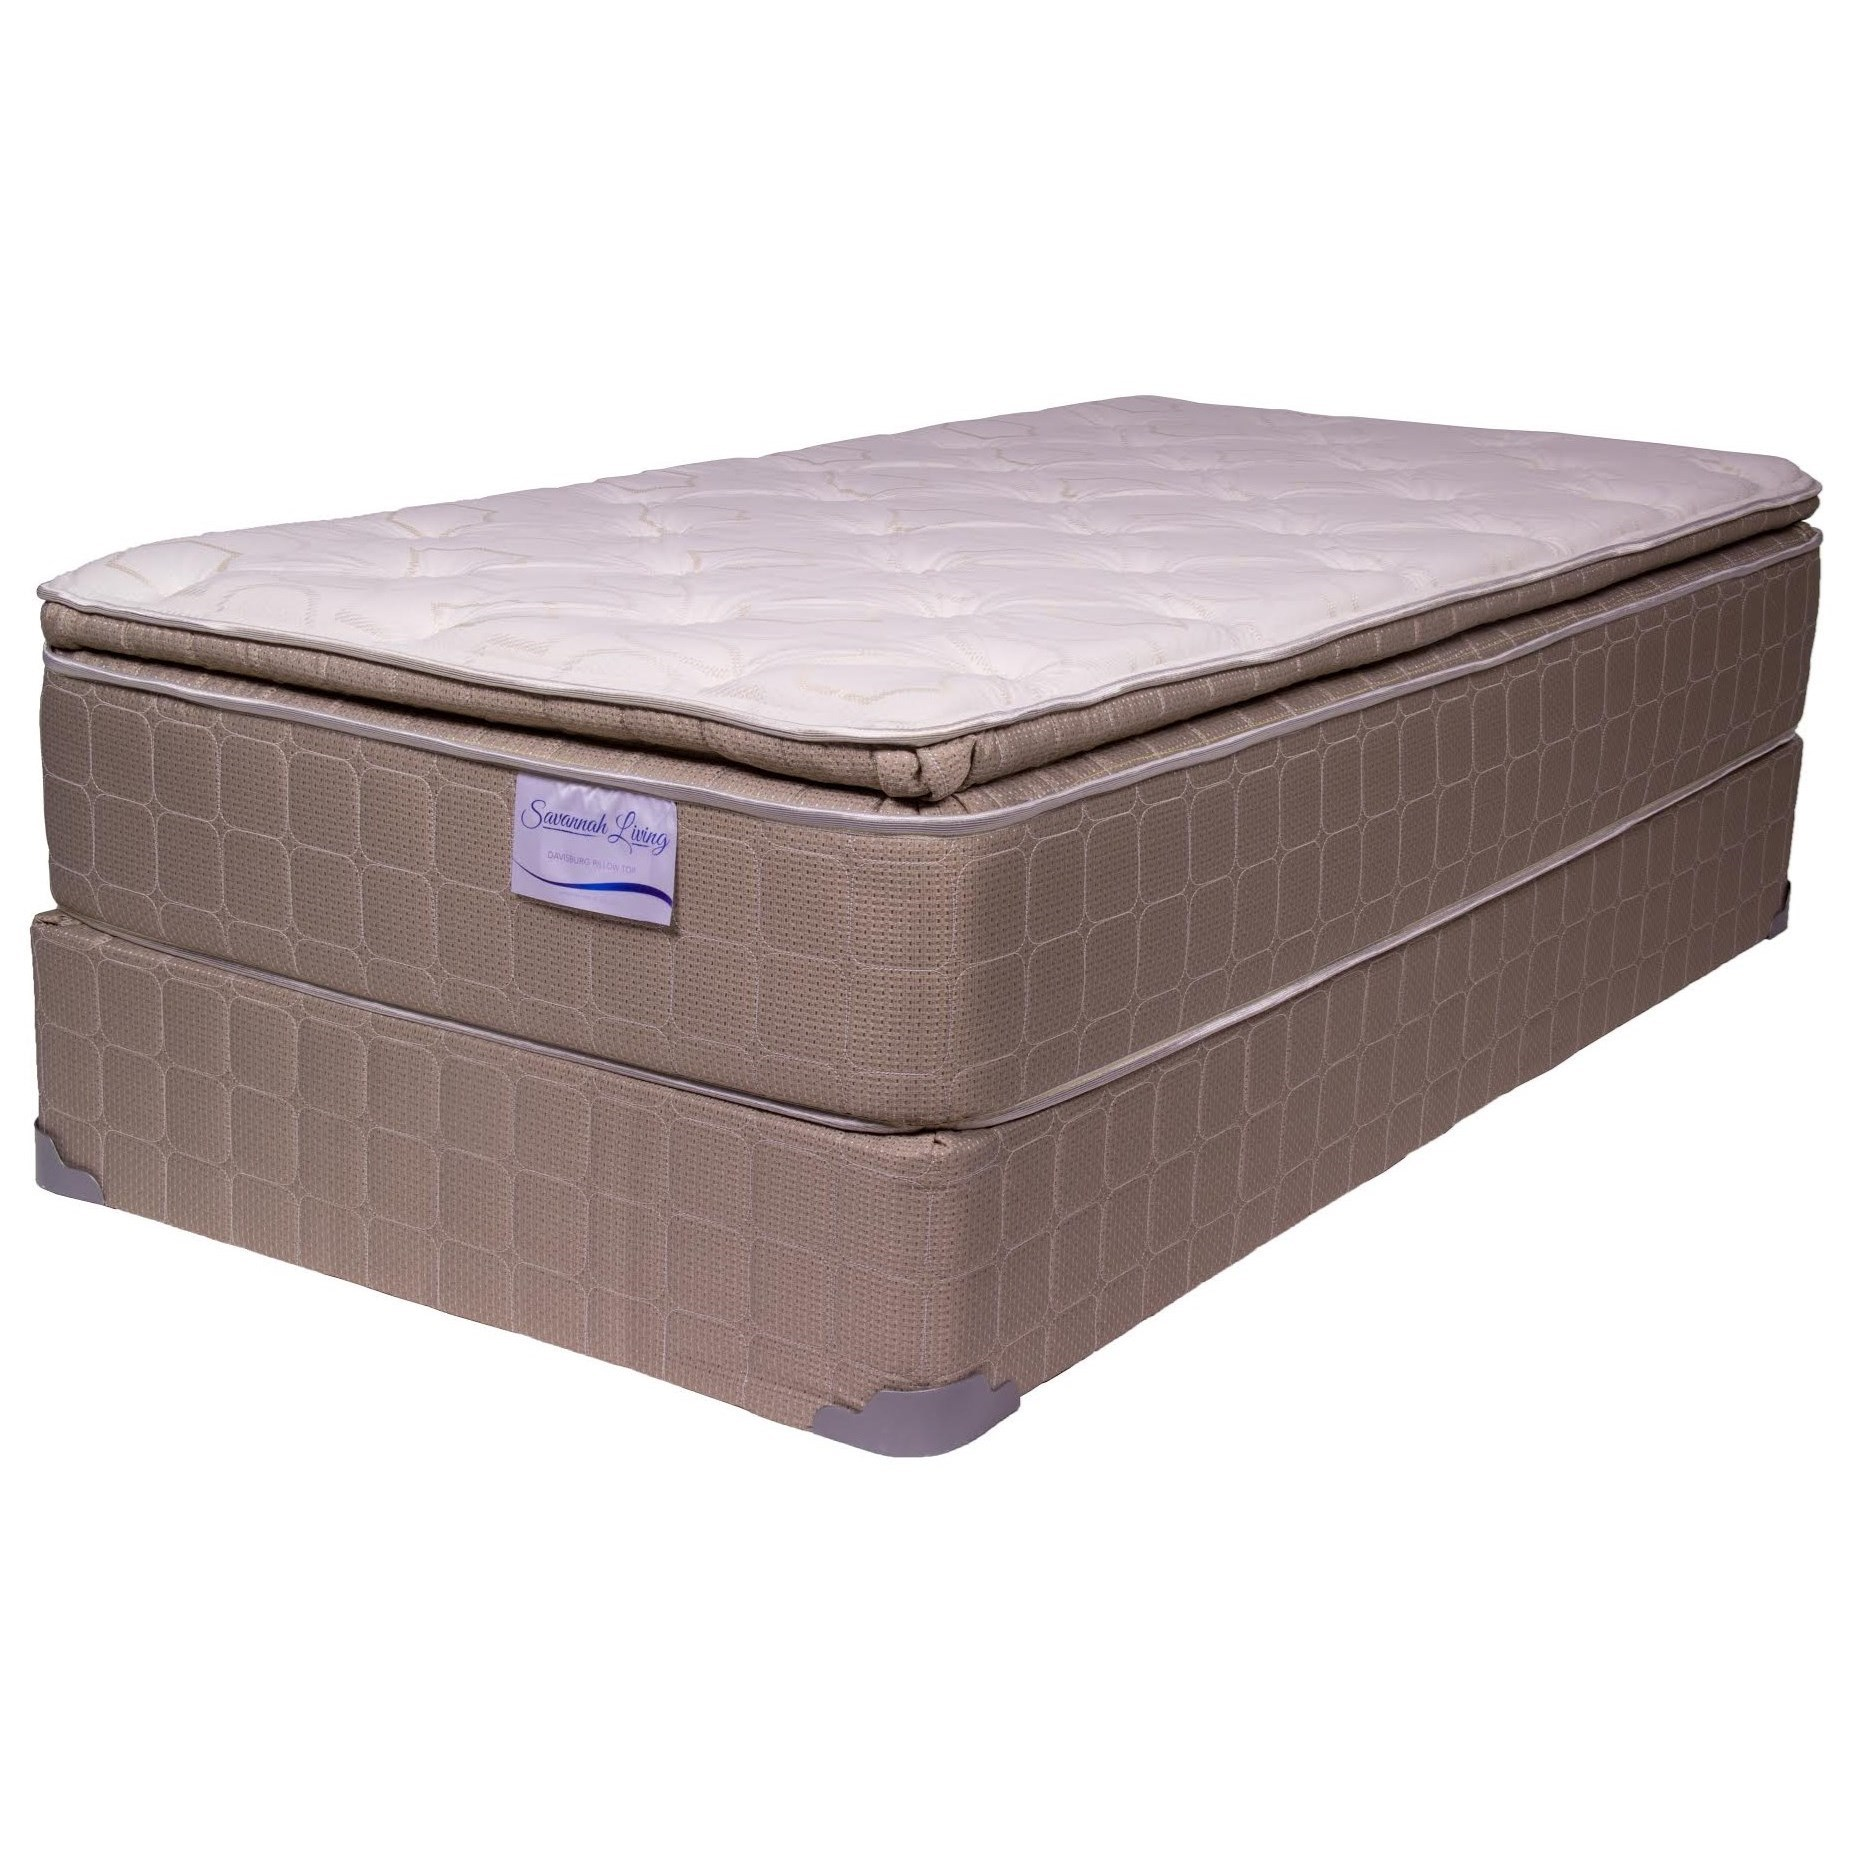 Corsicana Blvd Davisburg Pt Twin 13 Pillow Top Mattress And 9 Wood Foundation Boulevard Home